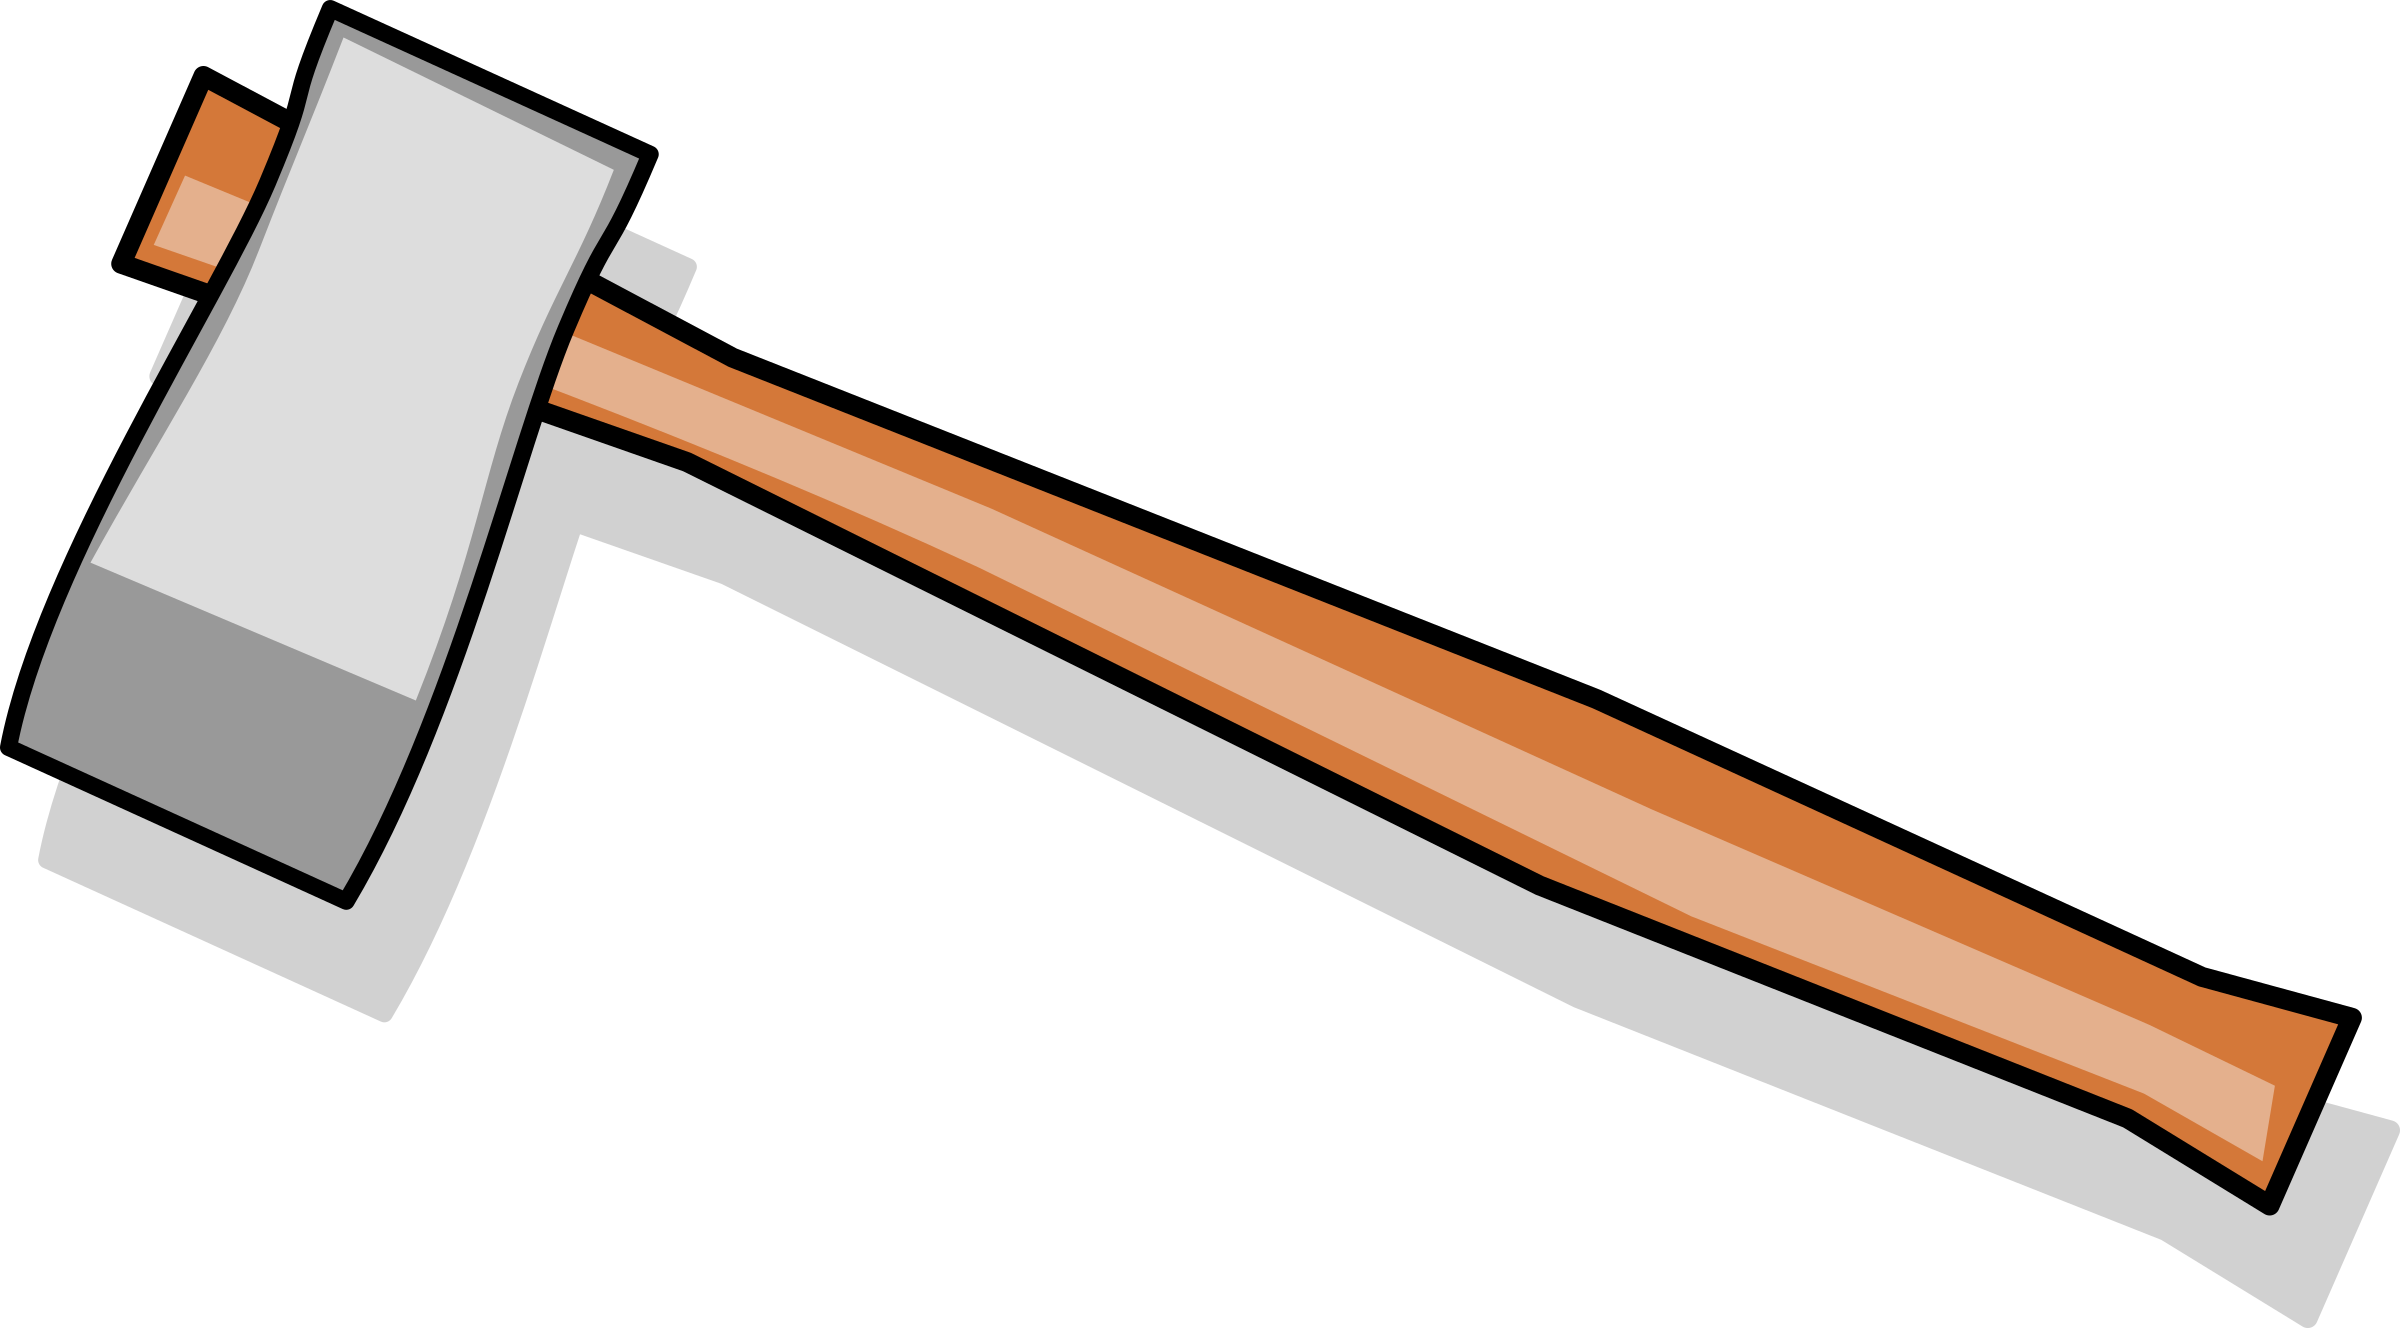 Spear clipart hatchet. Axe png transparent images